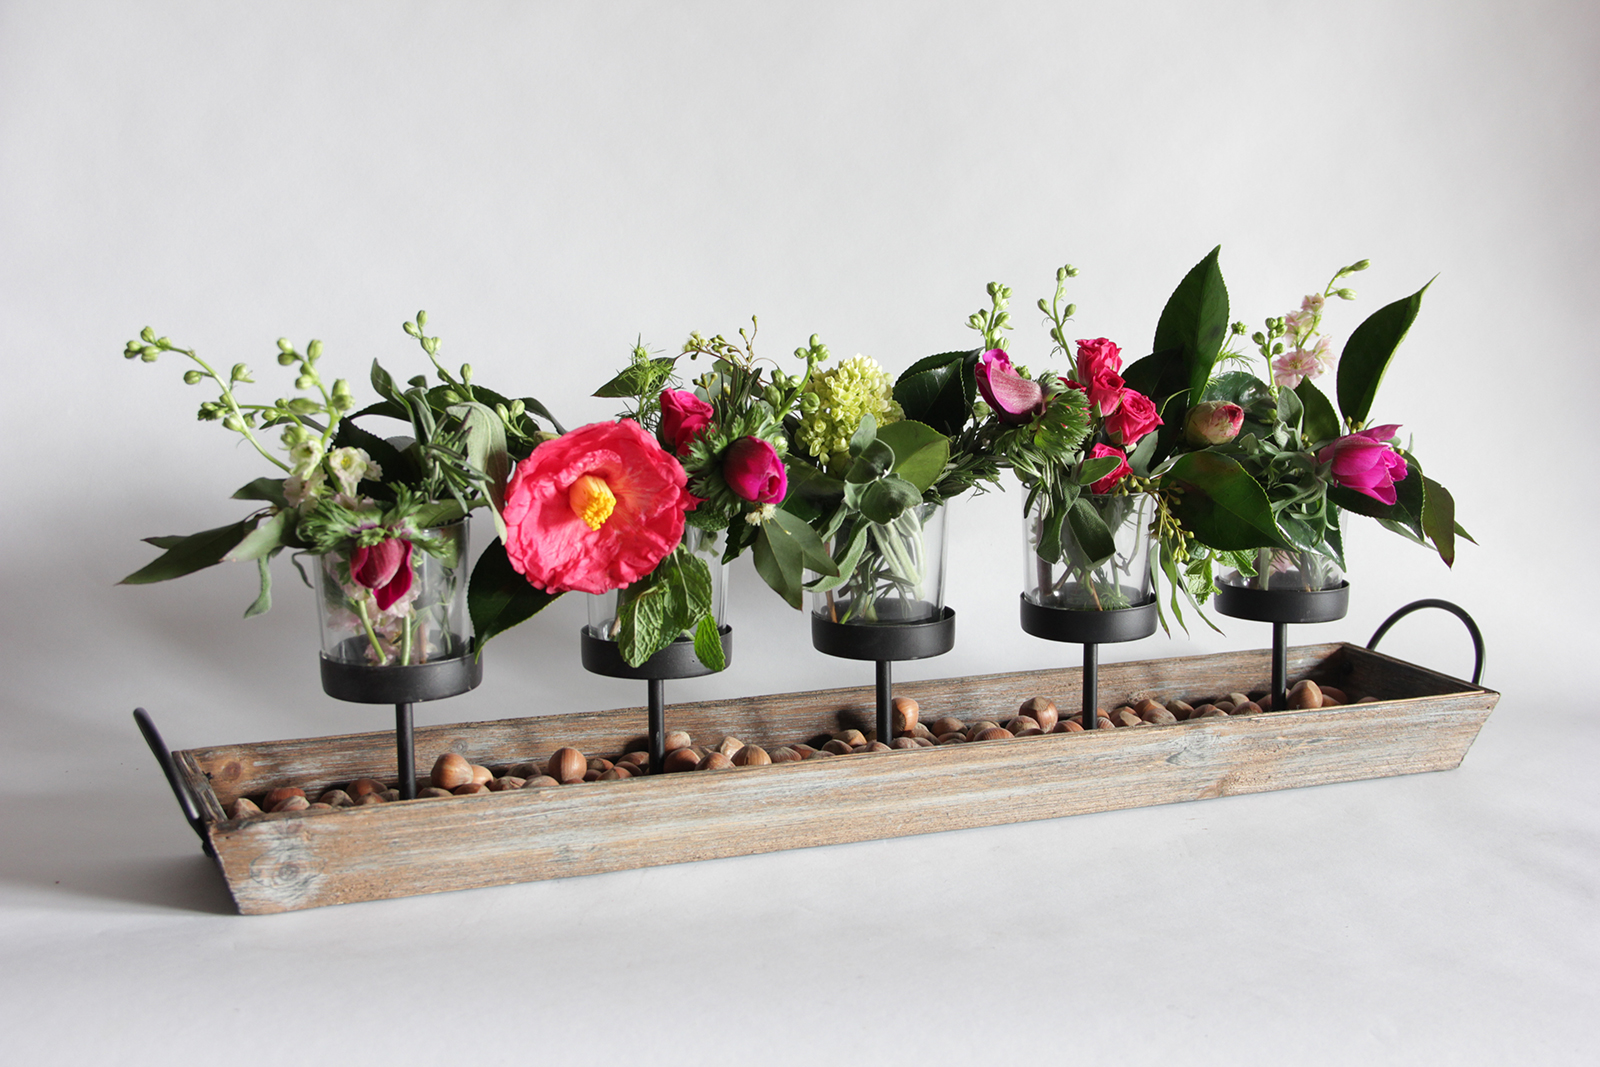 votive holder with mini flower bouquets and hazelnuts